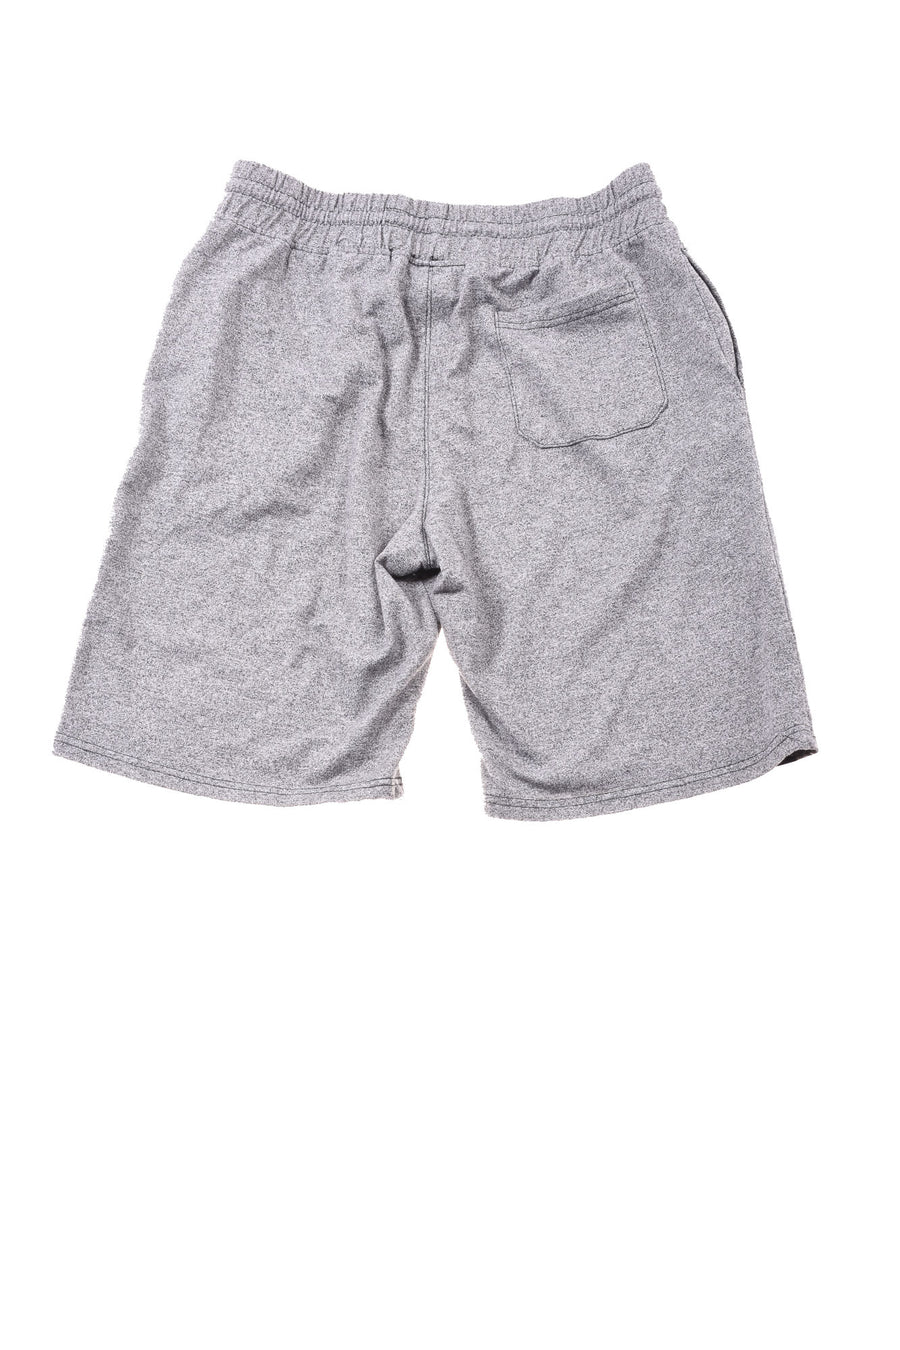 USED NBA Men's Cleveland Cavalier Shorts Medium Gray